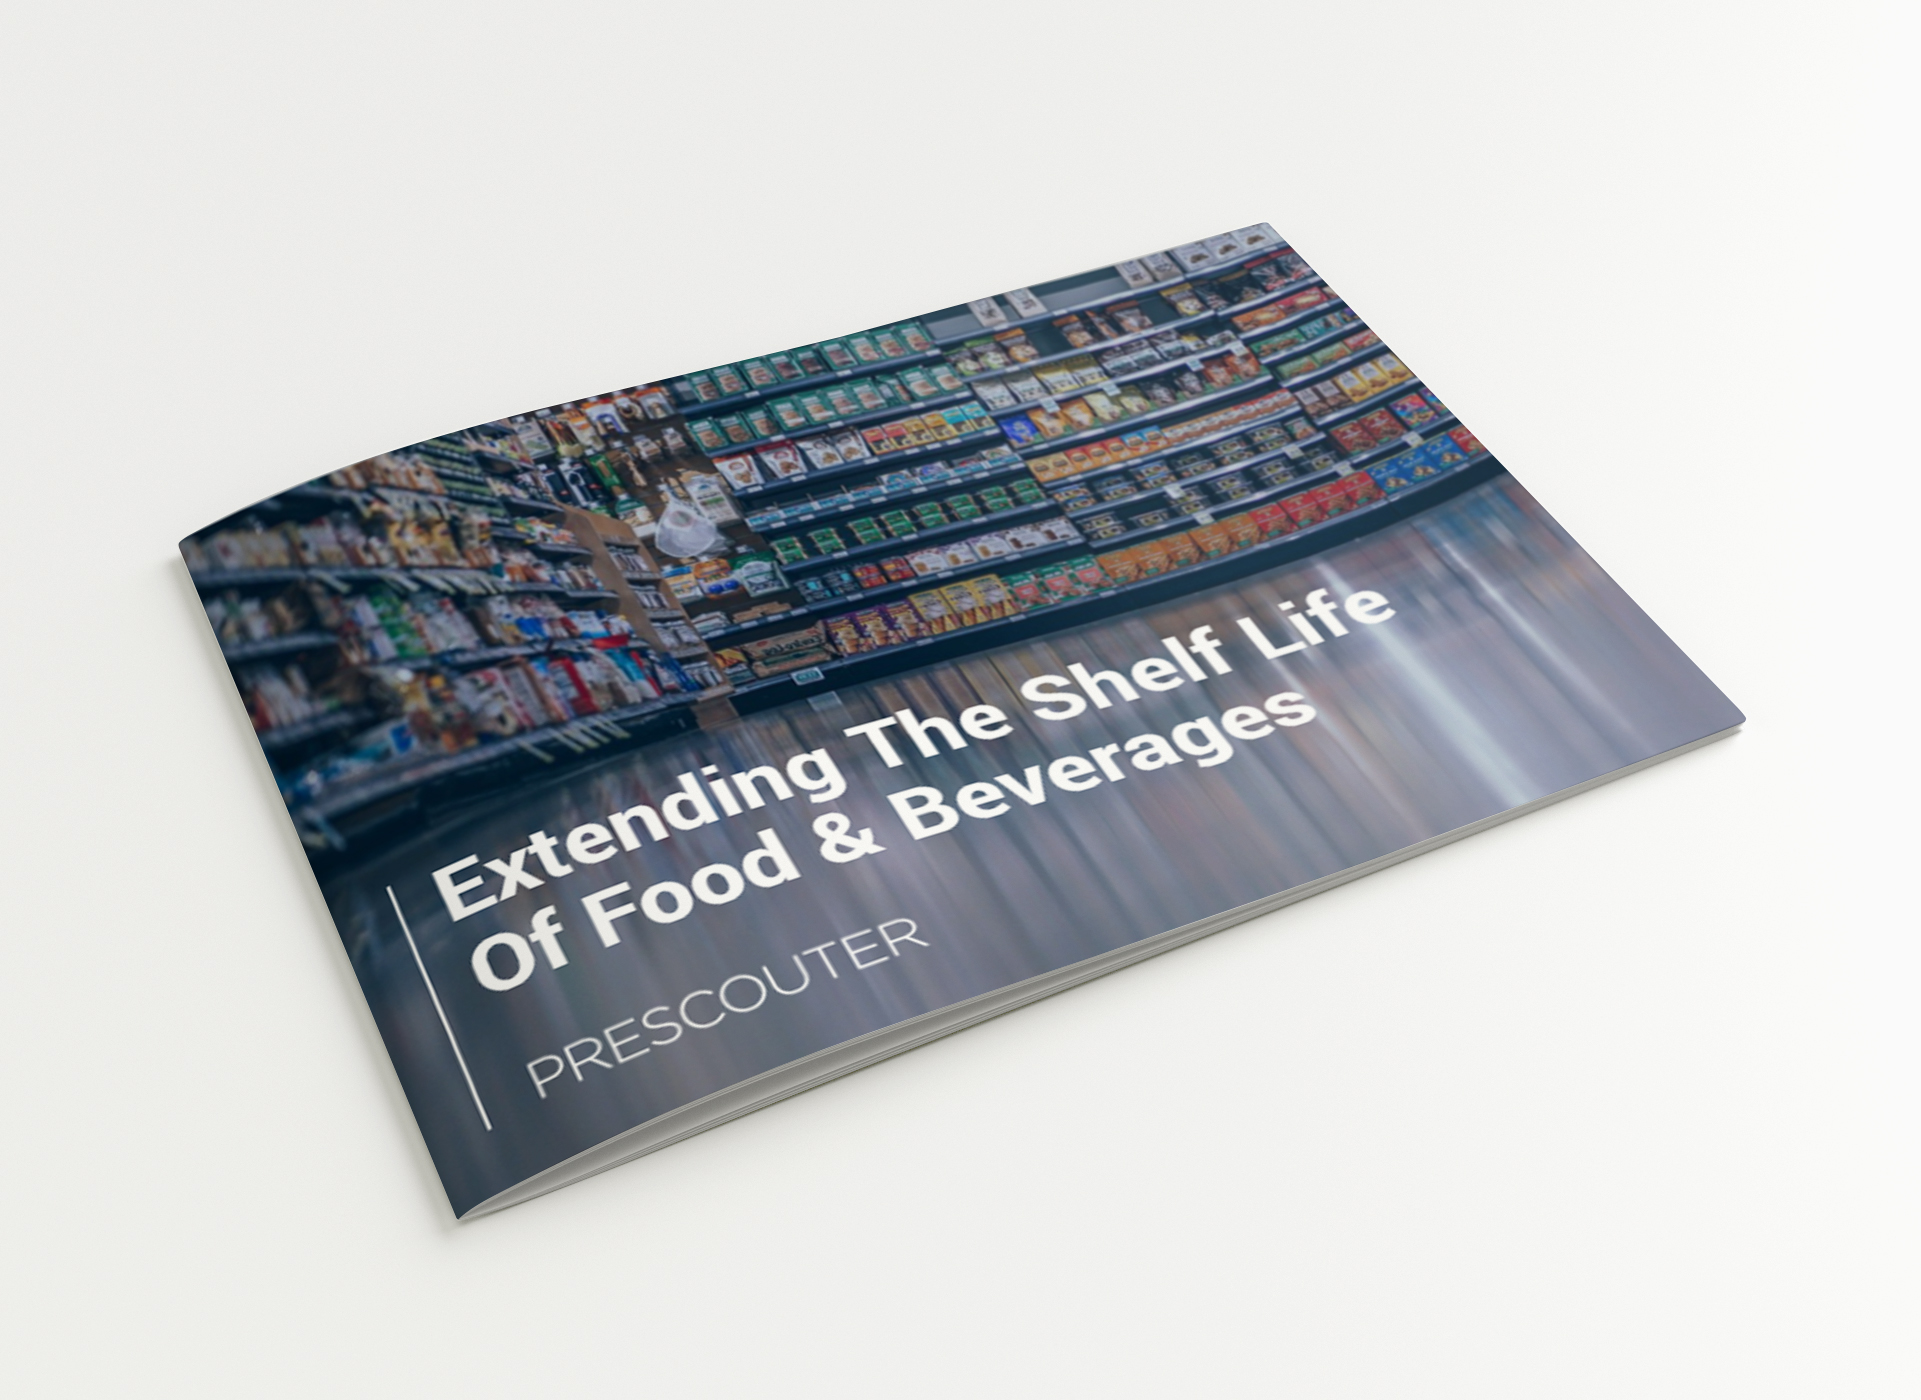 Extending The Shelf Life Of Food & Beverages